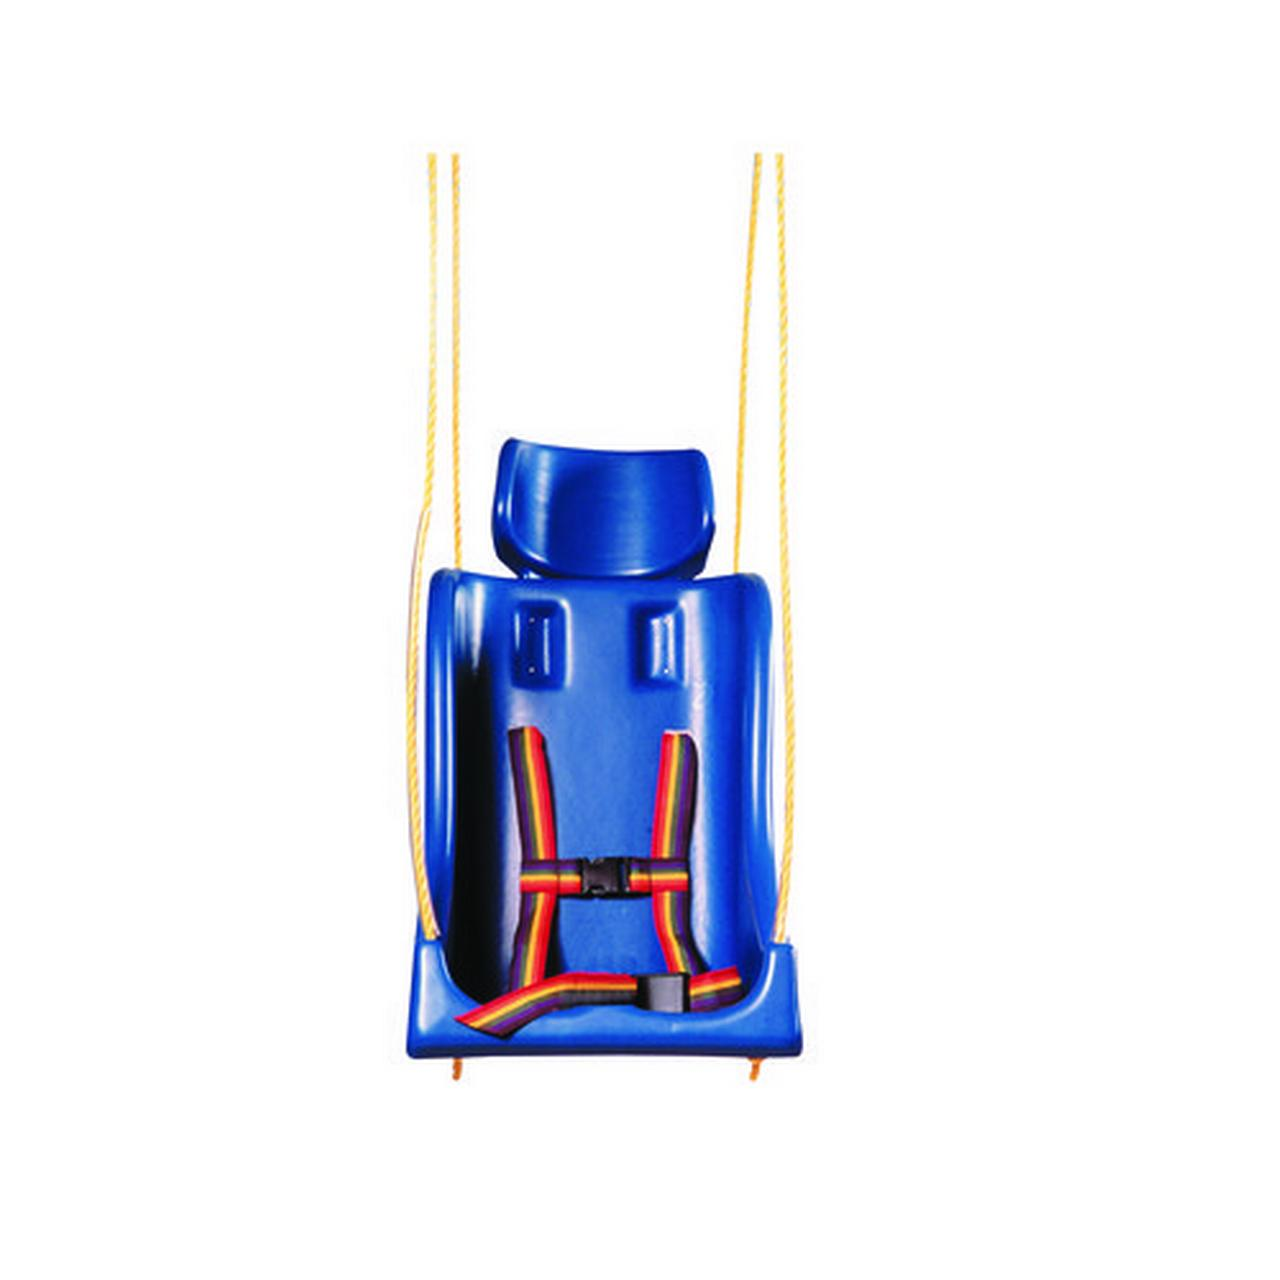 Skillbuilders 30-1636 Full Support Swing Seat Without Pommel Large Adult with Rope